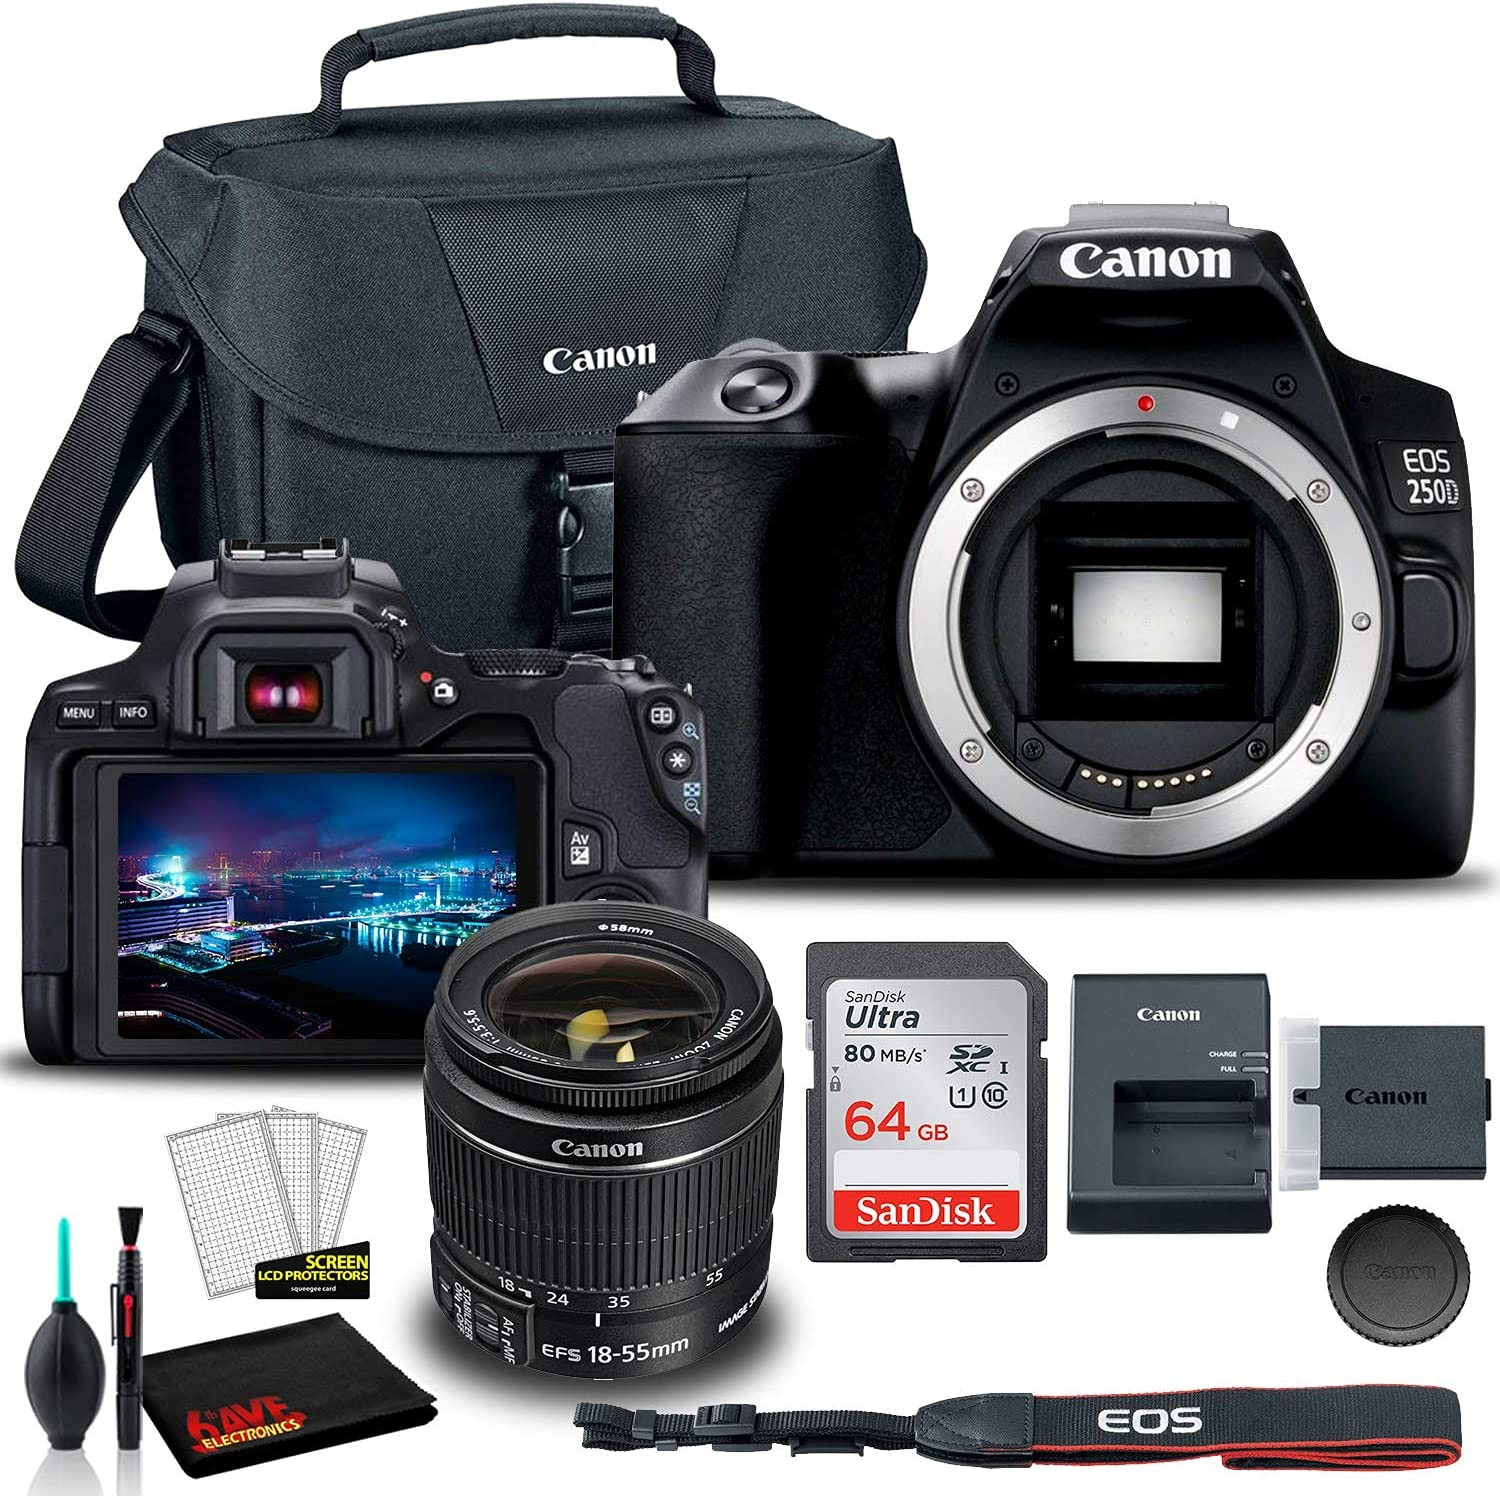 Canon EOS 250D Manufacturer regenerated product Superior DSLR Camera Black with Lens 3453C002 18-55mm